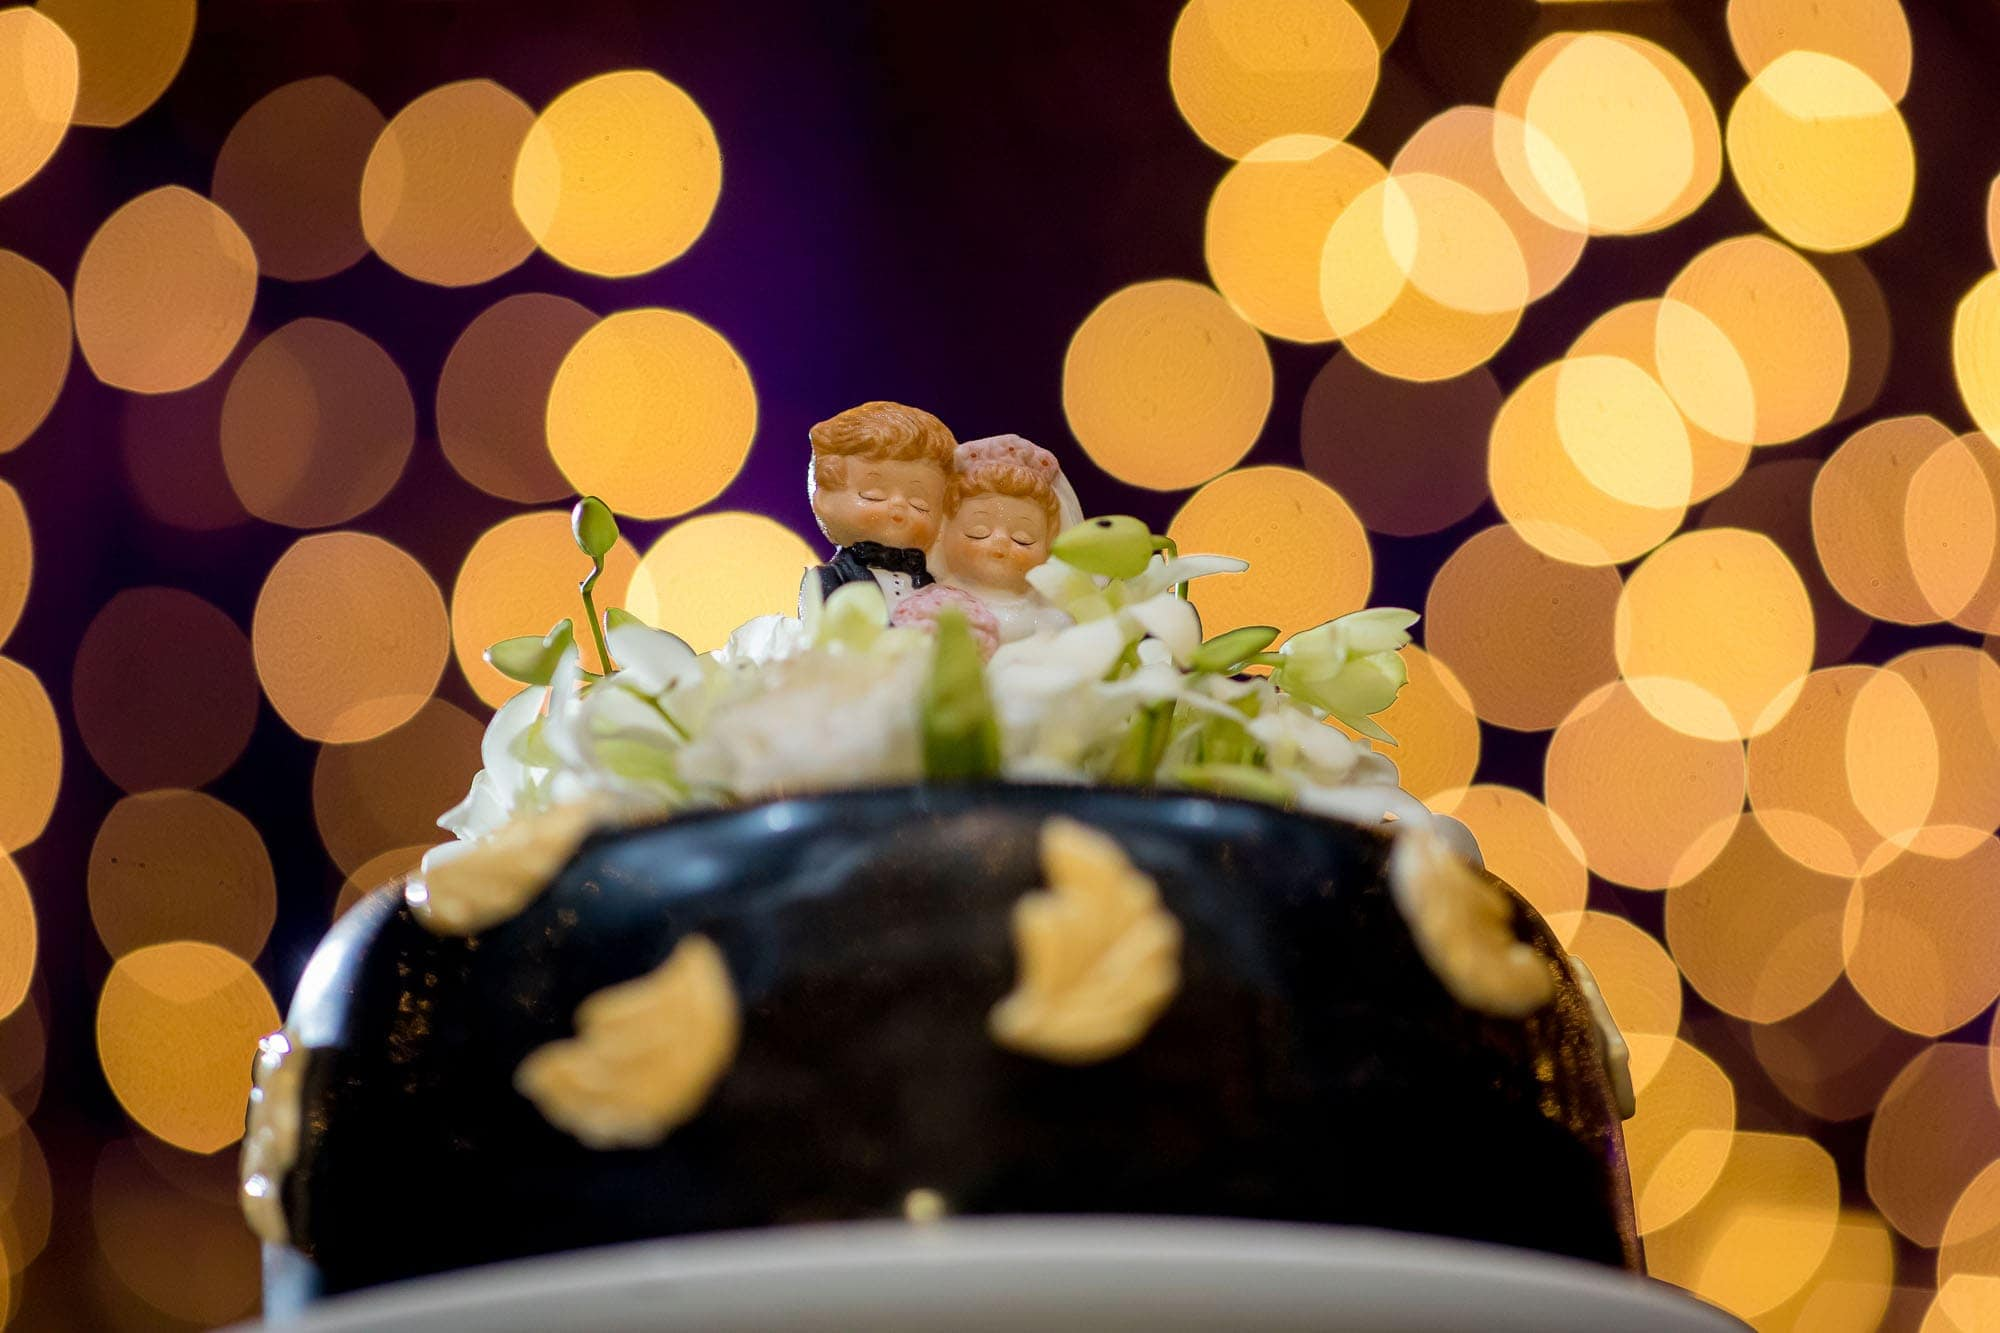 A shot of the top of the cake with plenty of bokeh blur behind it